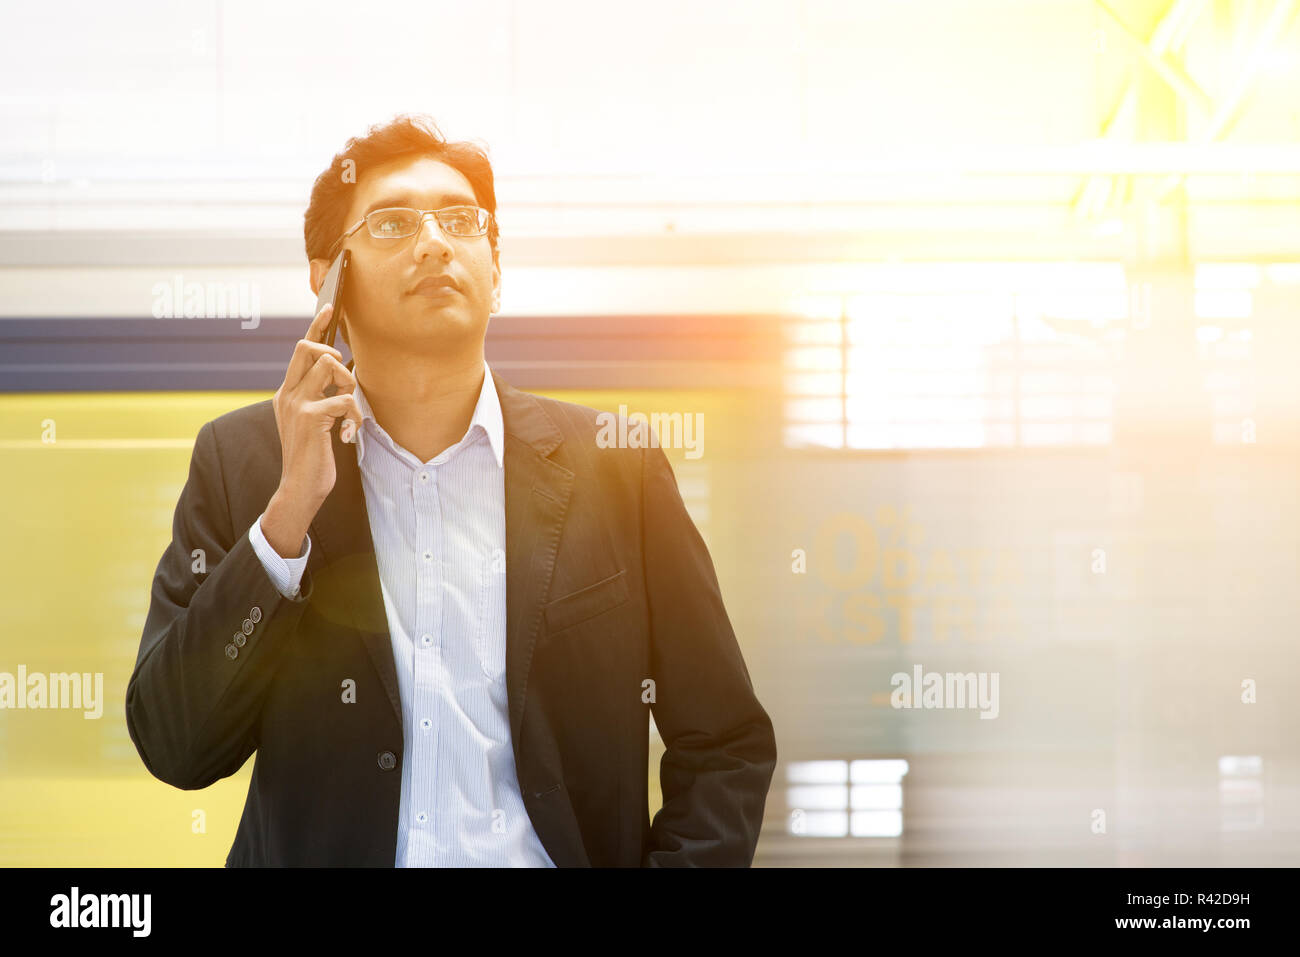 Indian businessman on the phone at railway station. Stock Photo